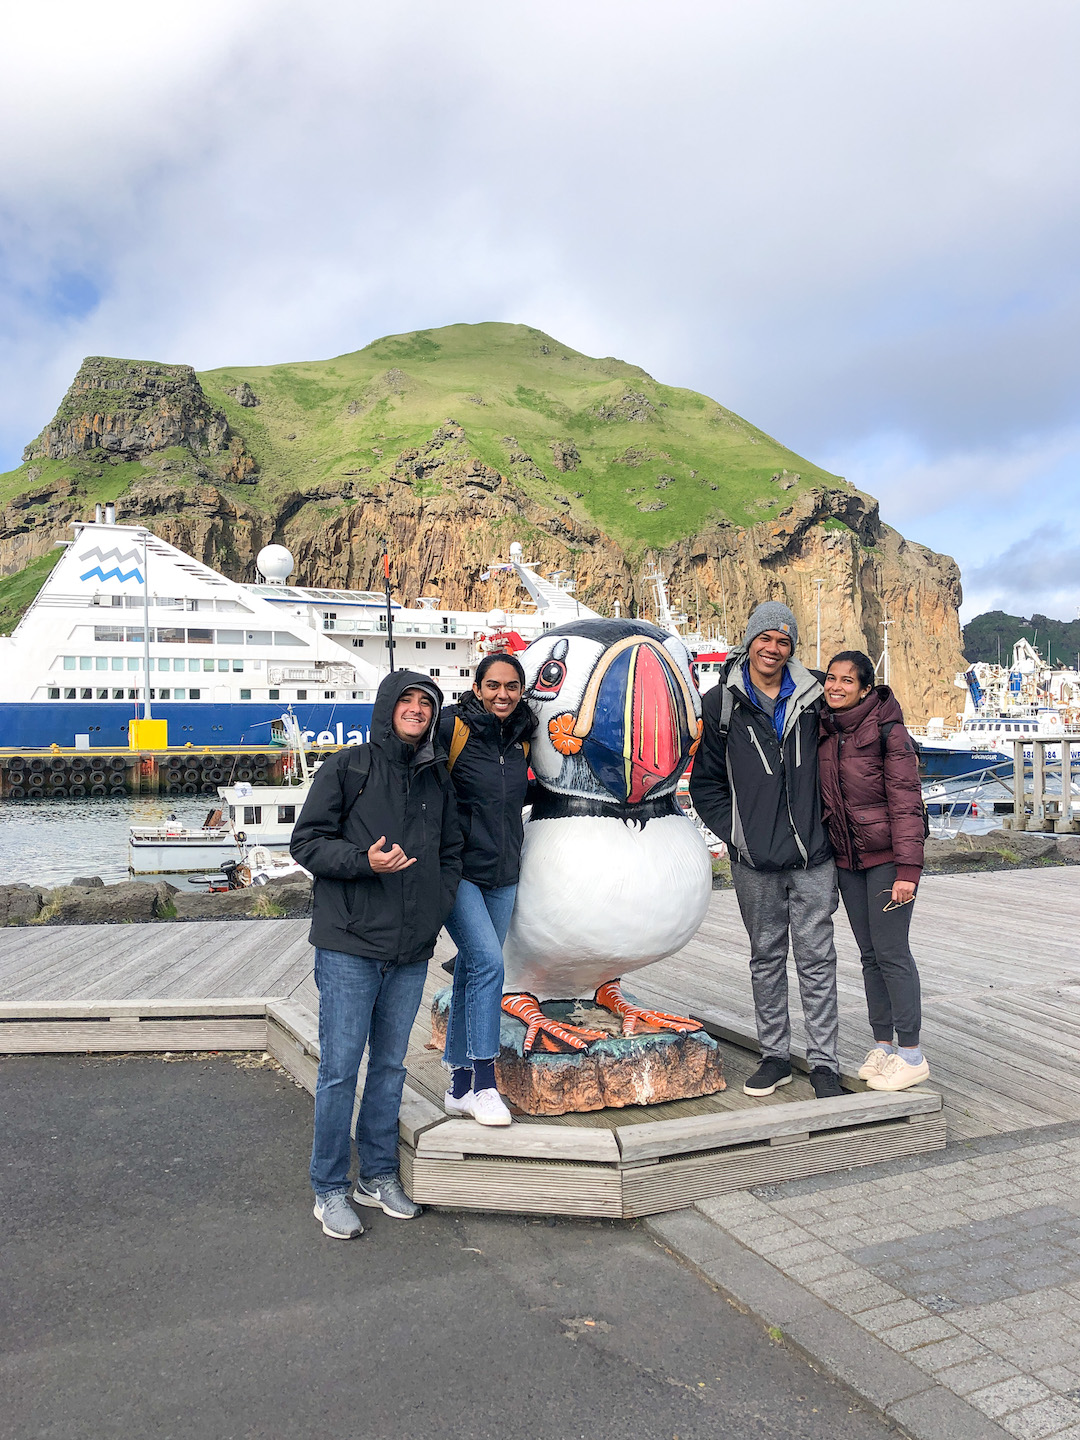 Her Travel Edit and friends at Westman Islands in Iceland